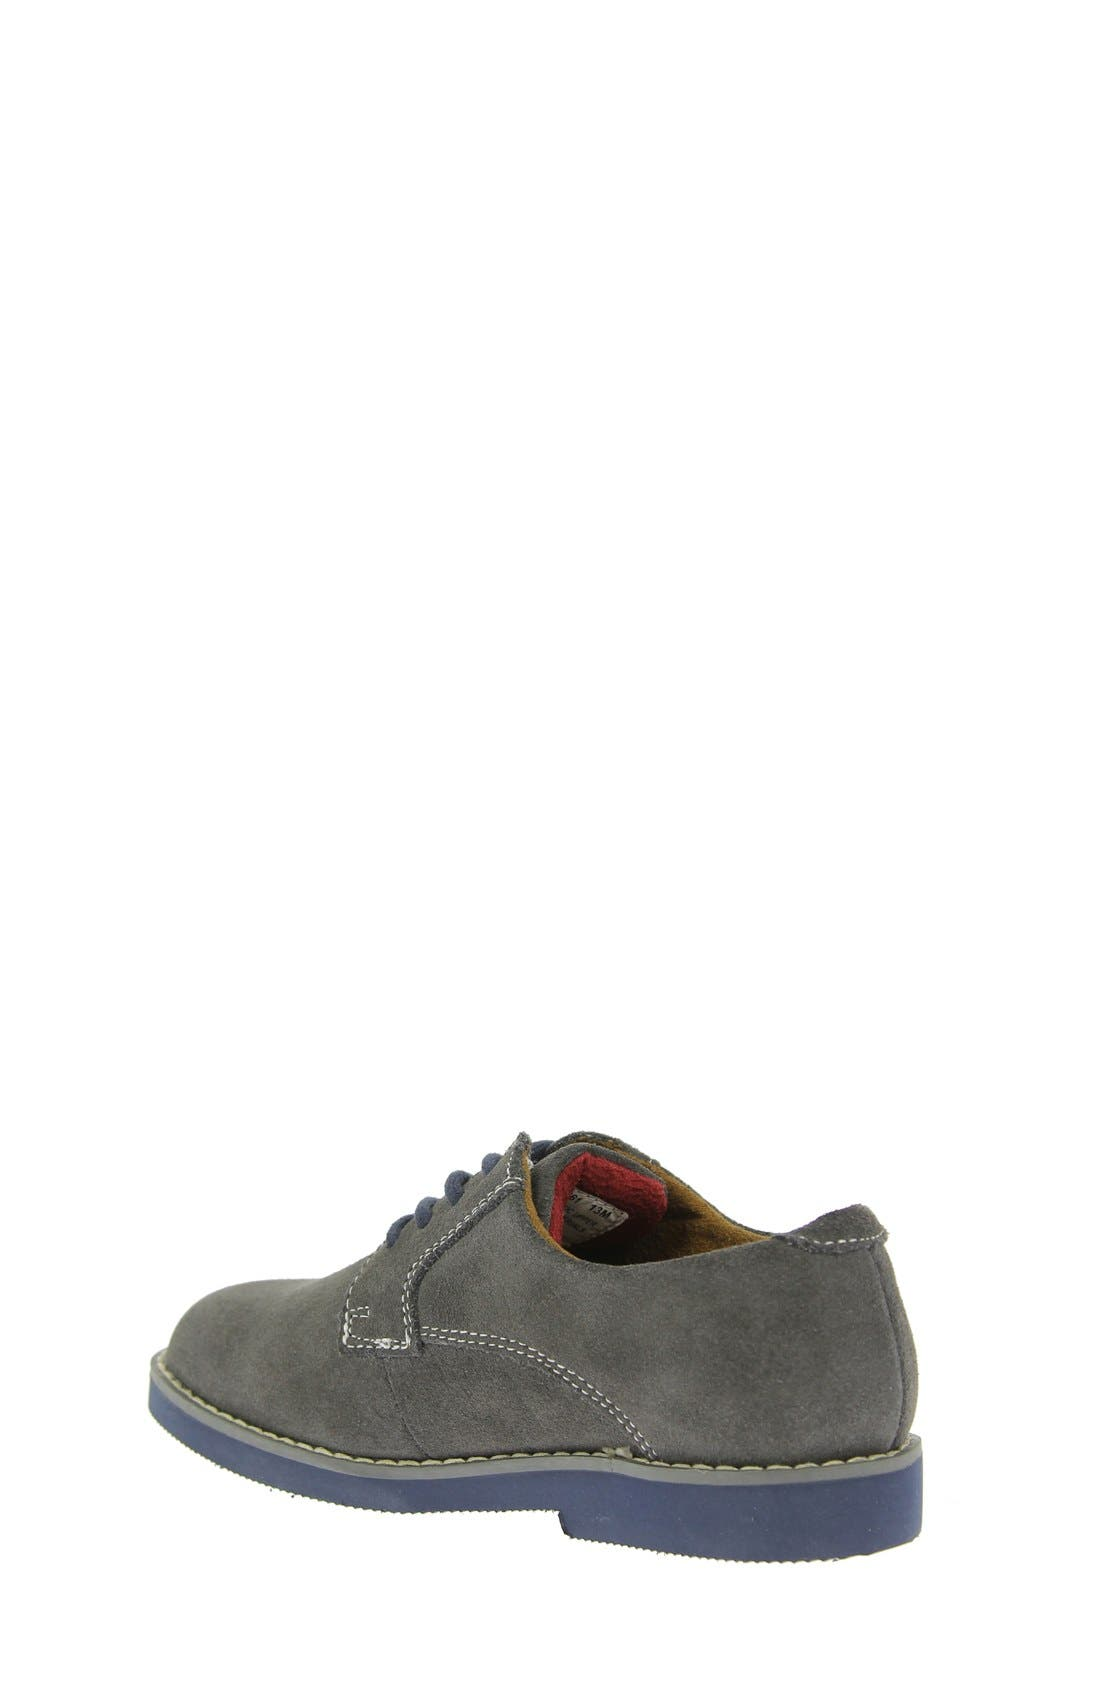 Kearny Two Tone Oxford,                             Alternate thumbnail 10, color,                             GREY/ NAVY SOLE